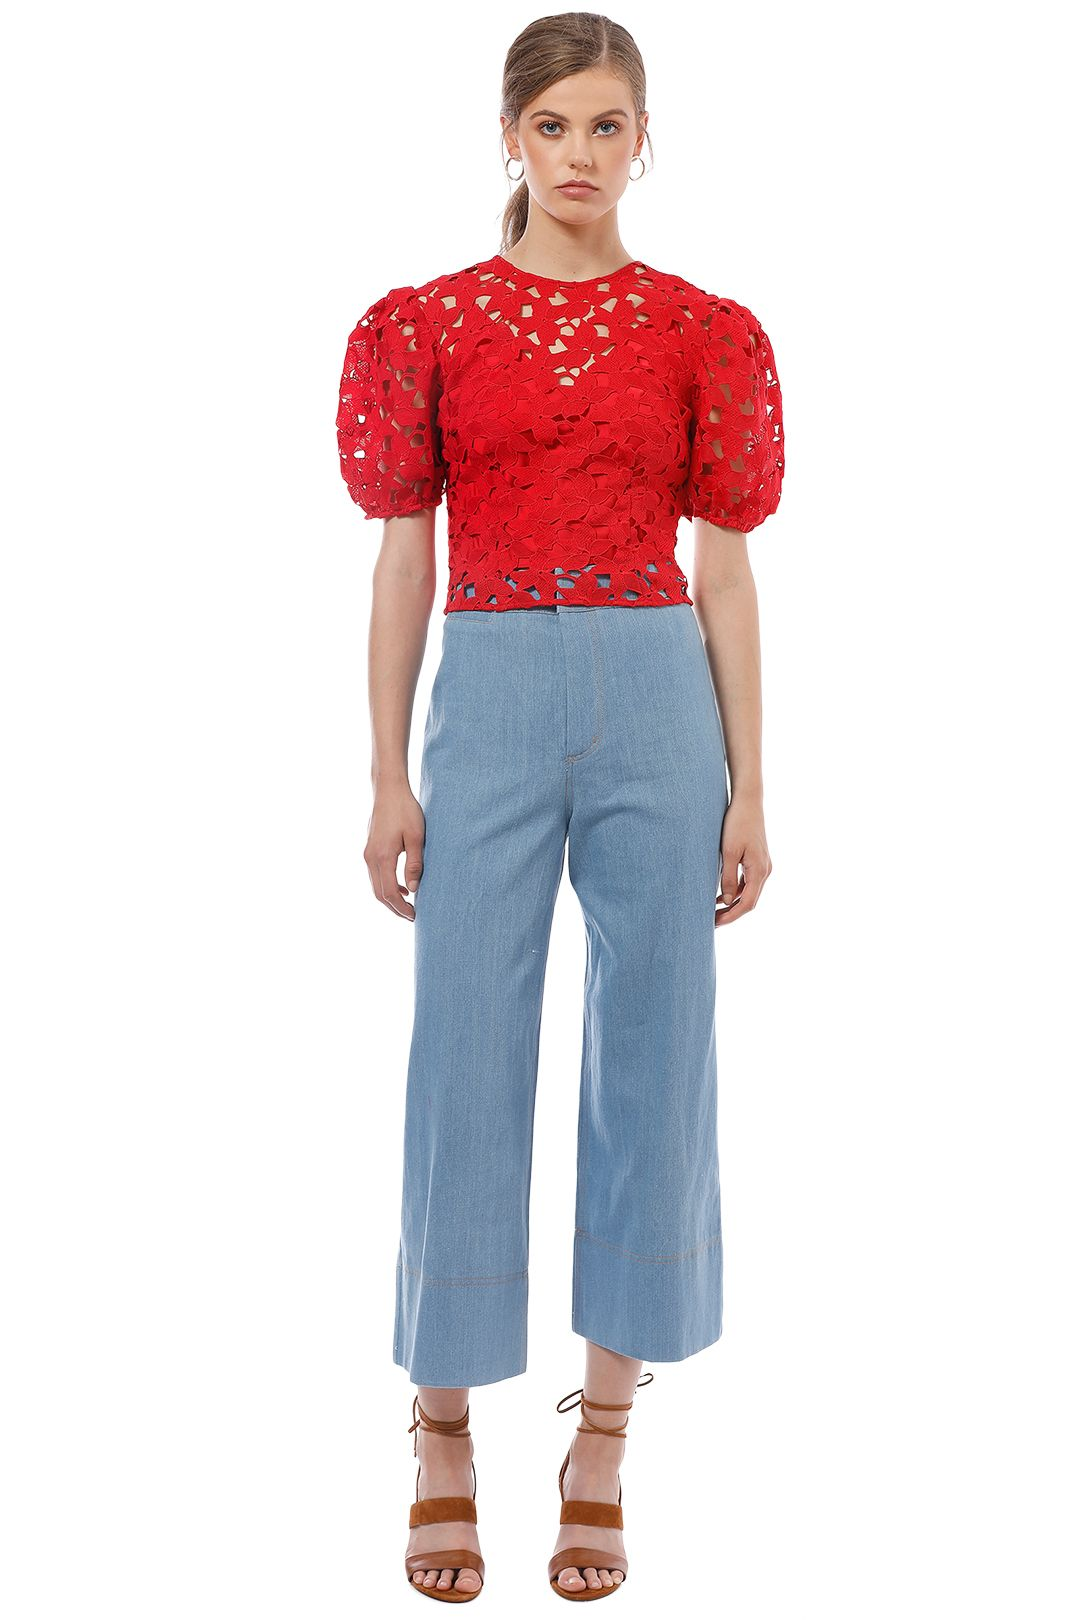 Keepsake the Label - Headlines Lace Top - Red - Front